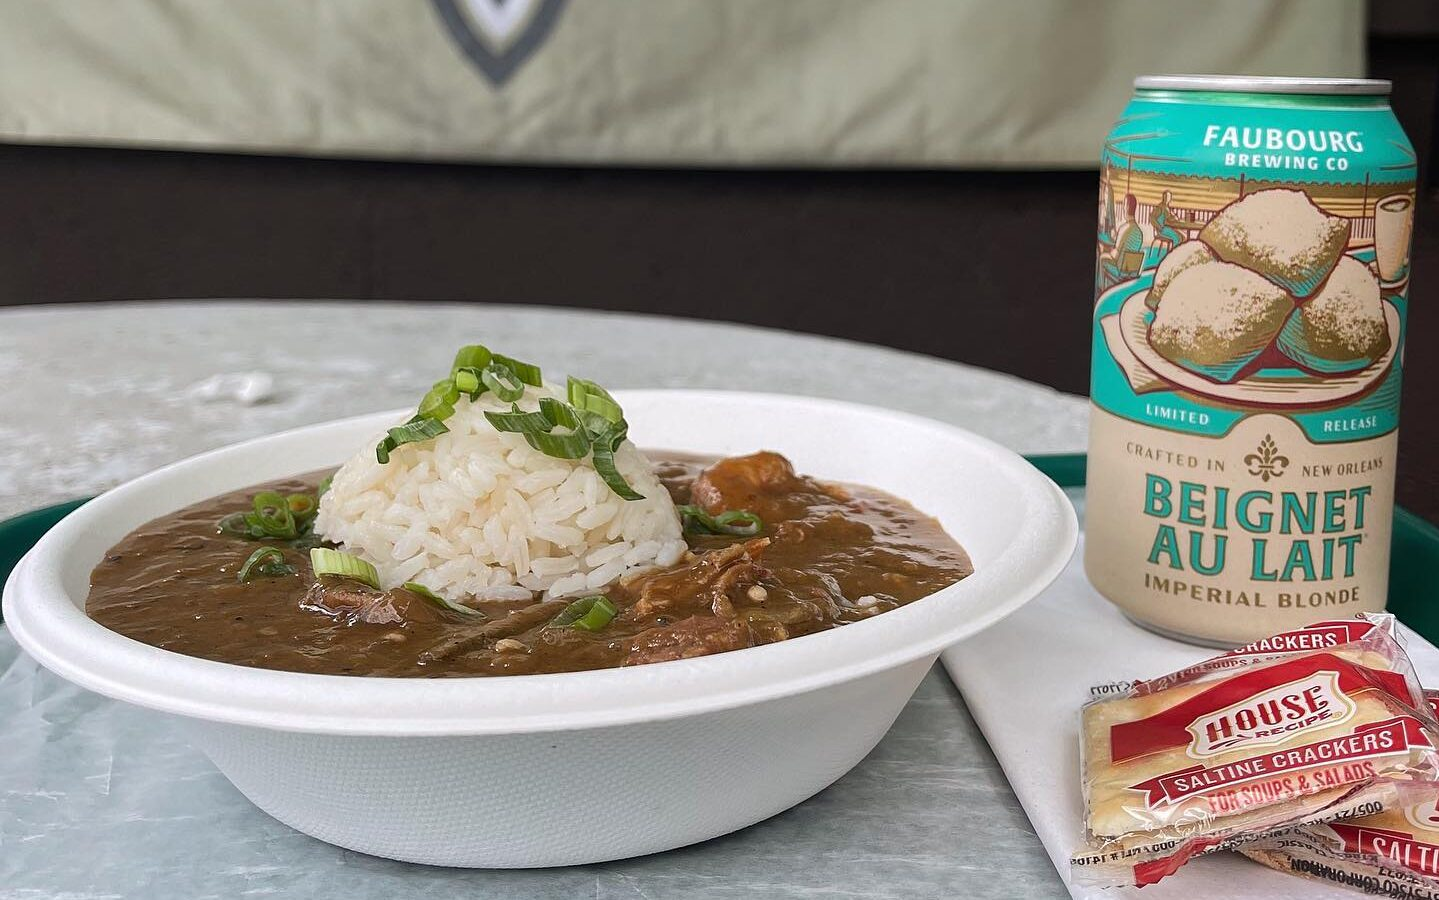 Your guide to 9 Birmingham spots serving gumbo for National Gumbo Day, Oct. 12